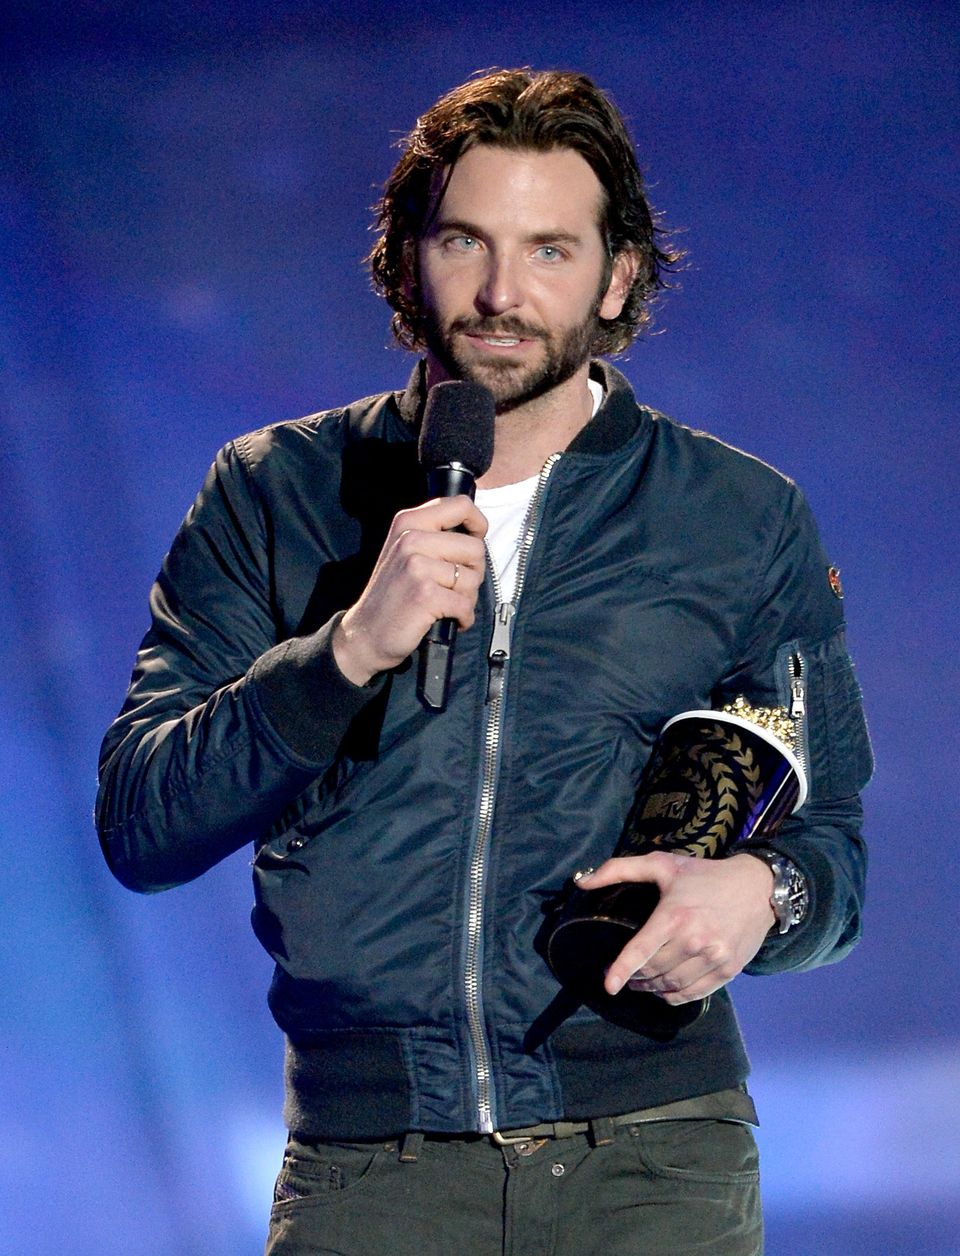 CULVER CITY, CA - APRIL 14:  Actor Bradley Cooper accepts Best Male Performance award for 'Silver Linings Playbook' onstage d